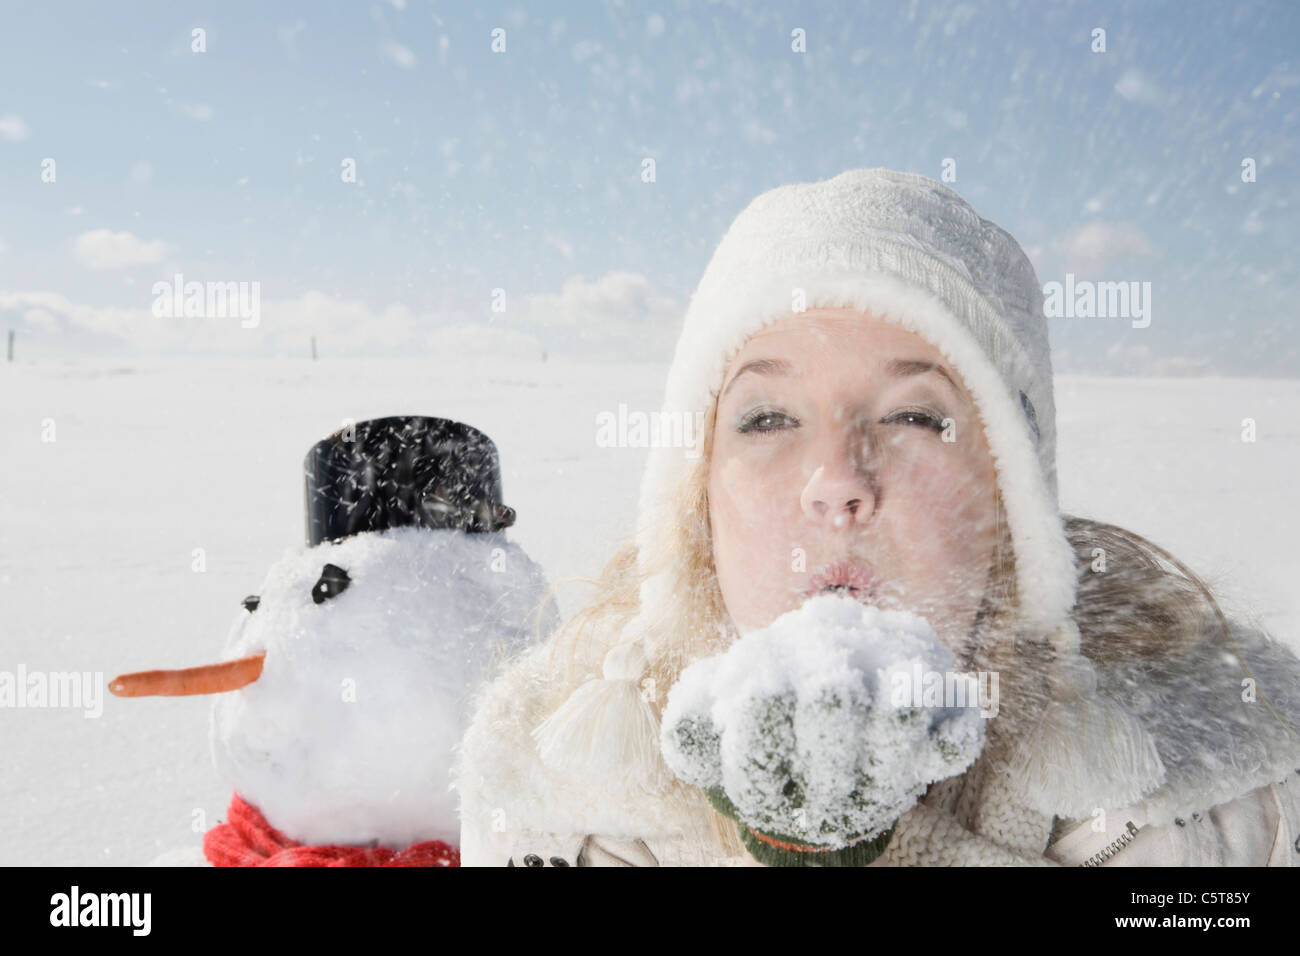 Germany, Bavaria, Munich, Young woman blowing snow off hand, portrait - Stock Image